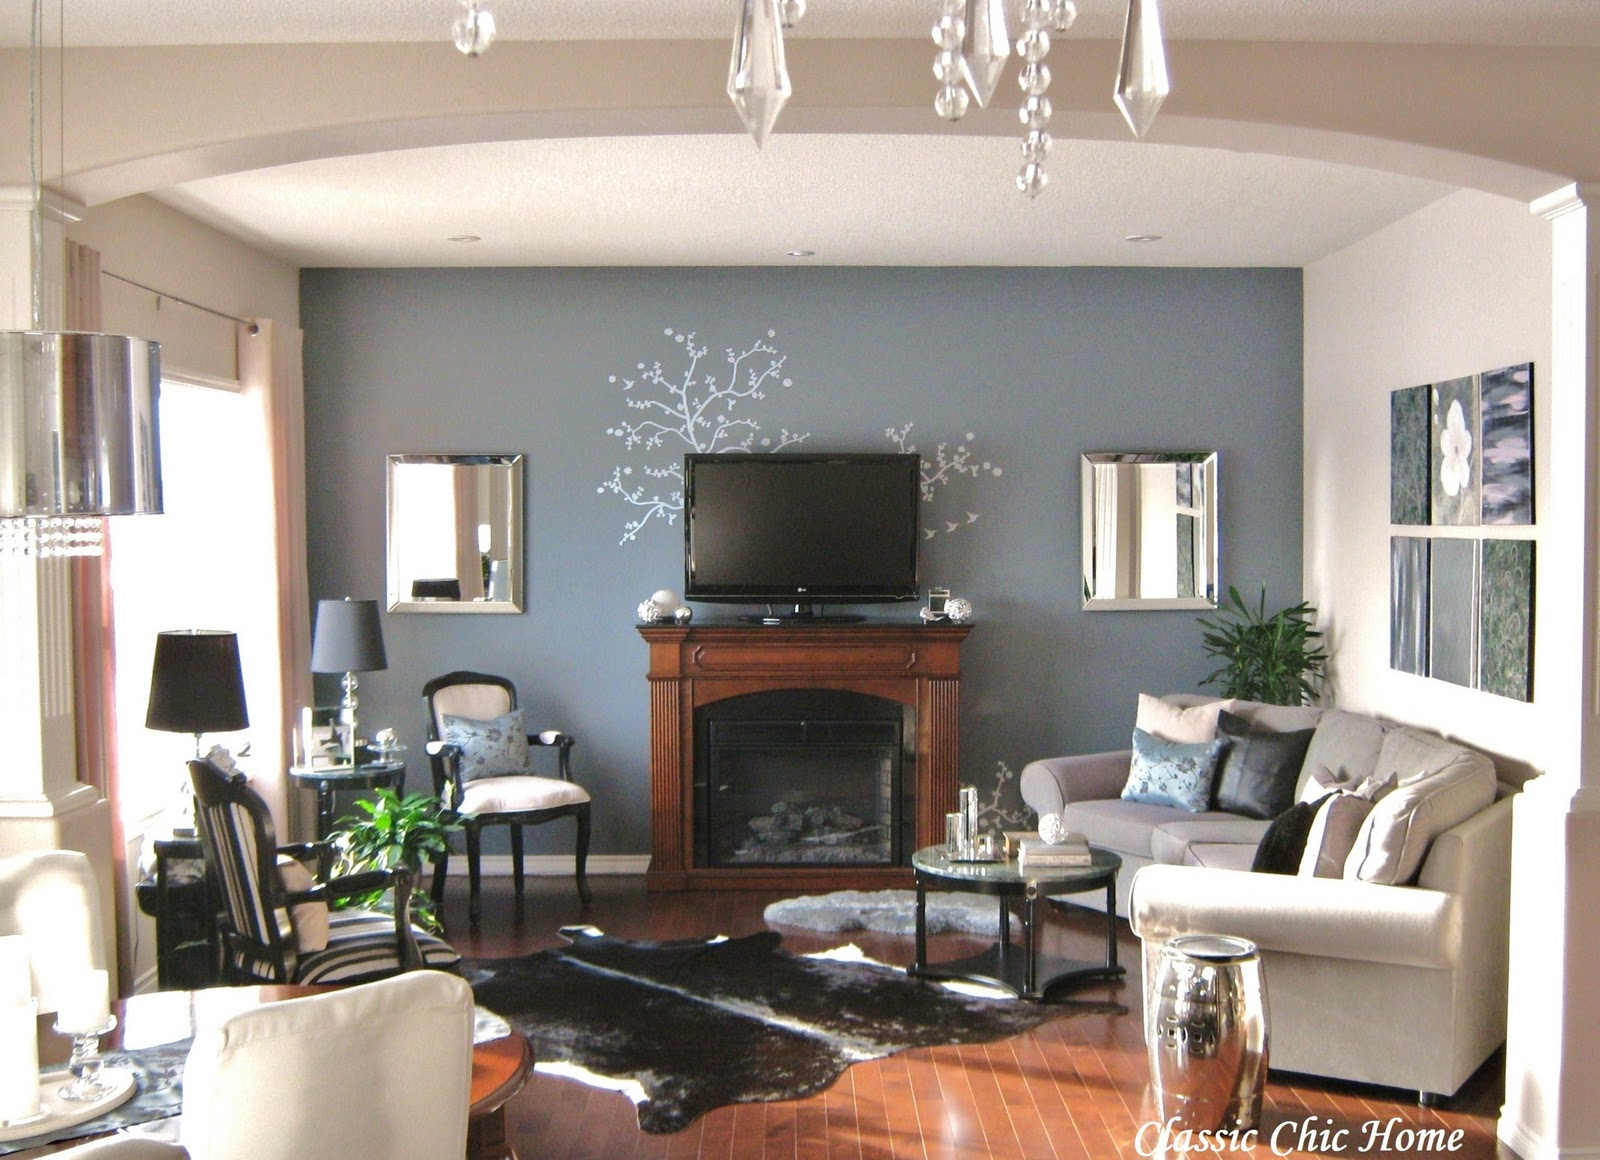 living room with fireplace design ideas - Design Ideas For Living Rooms With Fireplace